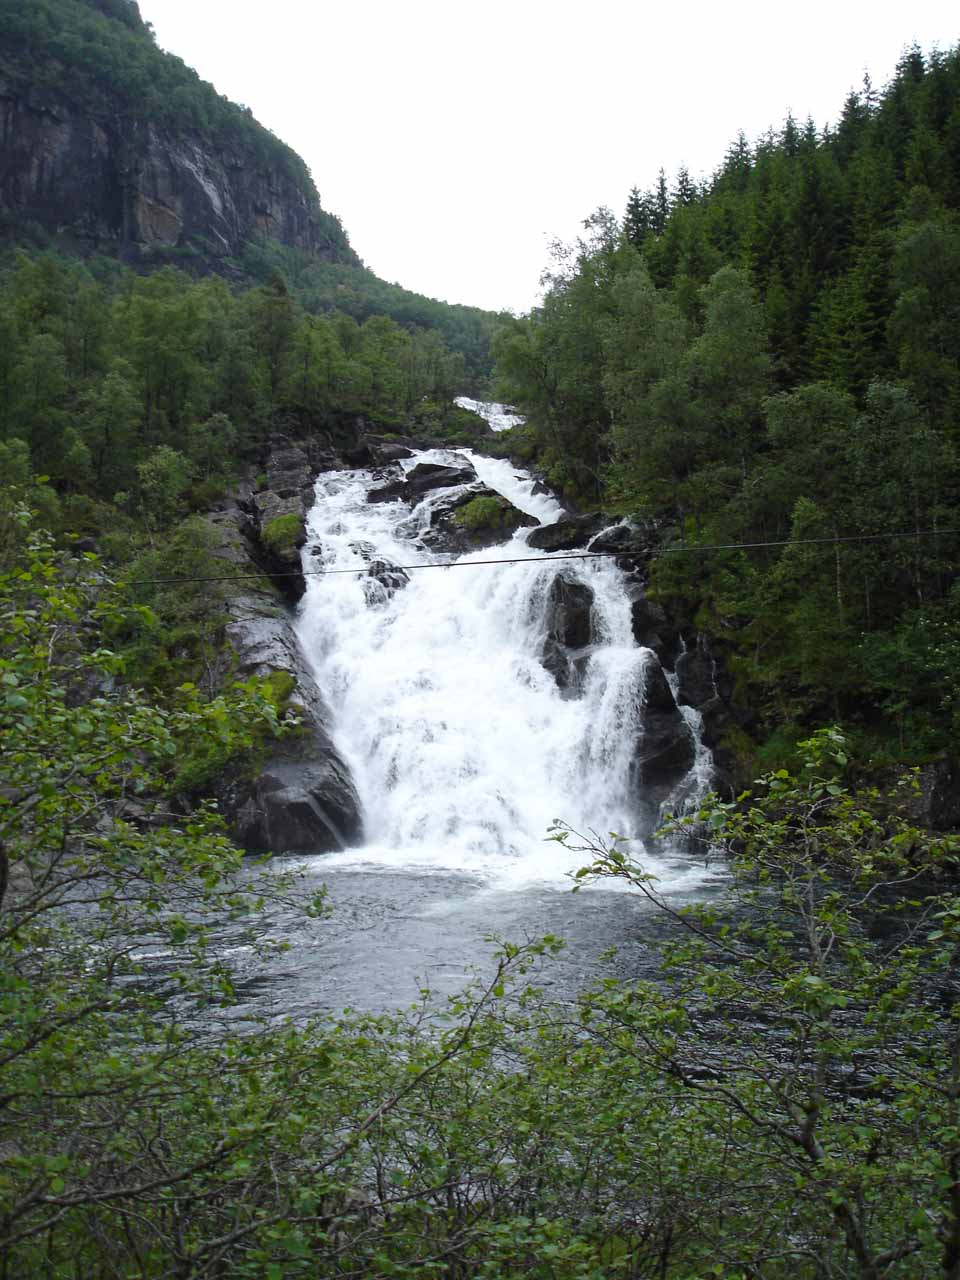 A more direct look at the waterfall west of Fossen Bratte seen from the Fv7